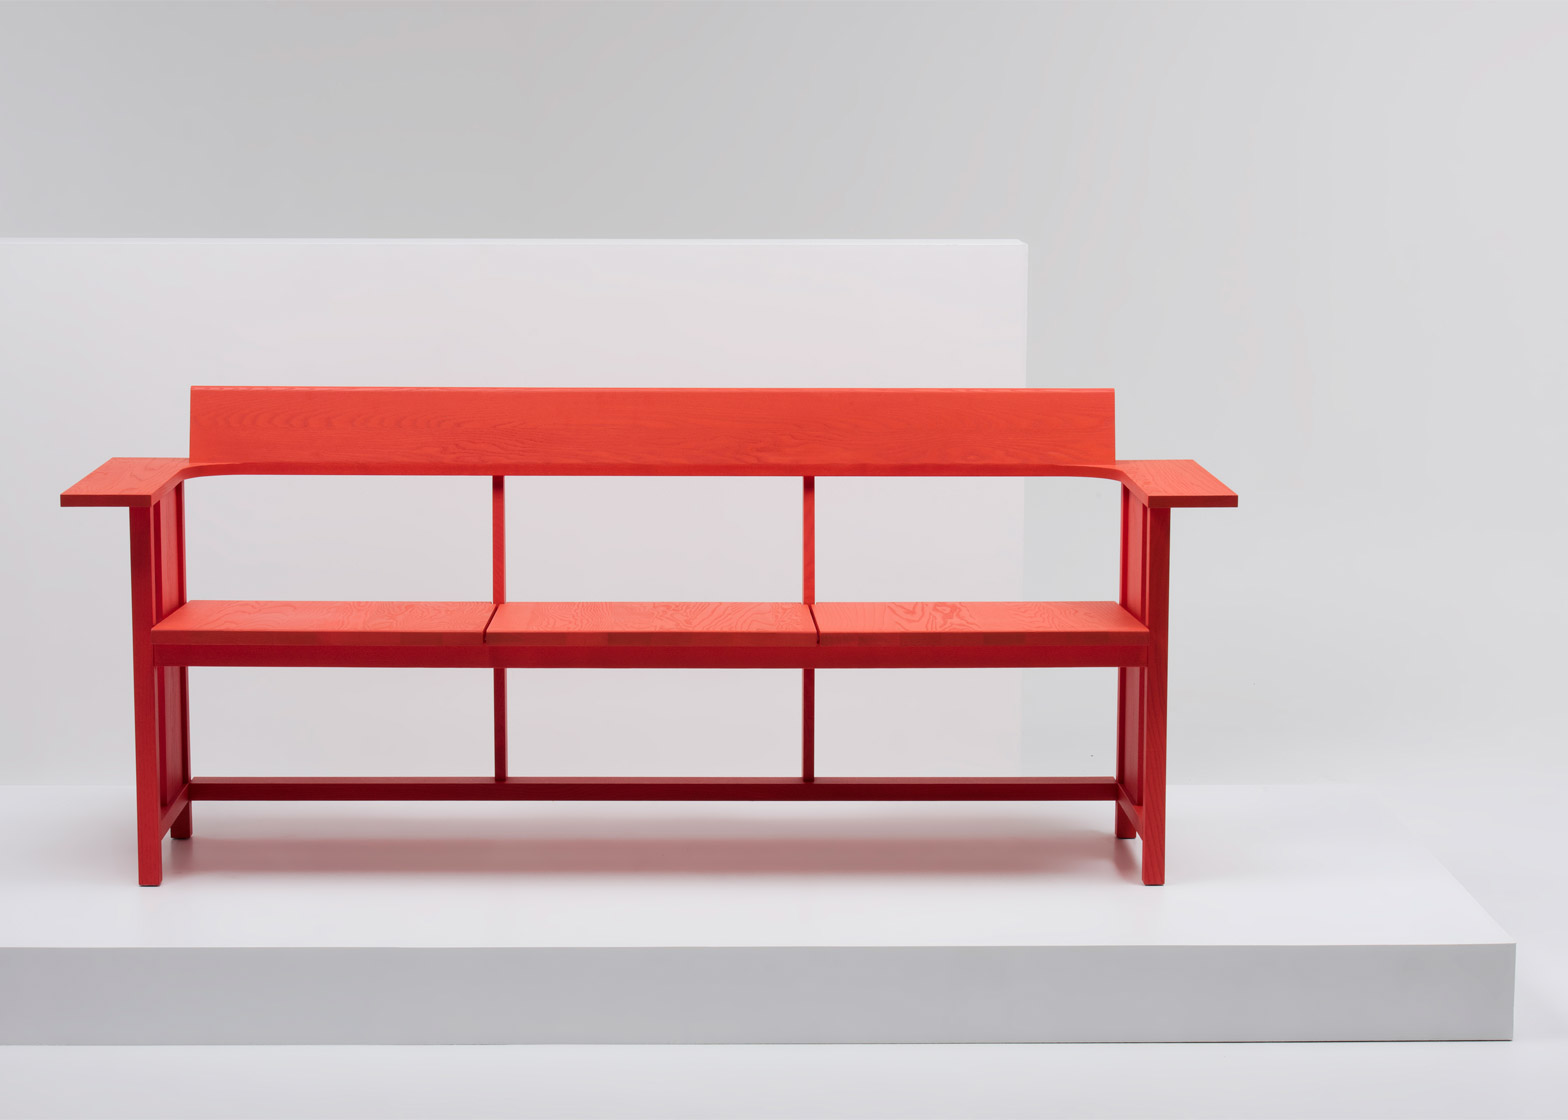 Clerici wooden bench for Mattiazzi